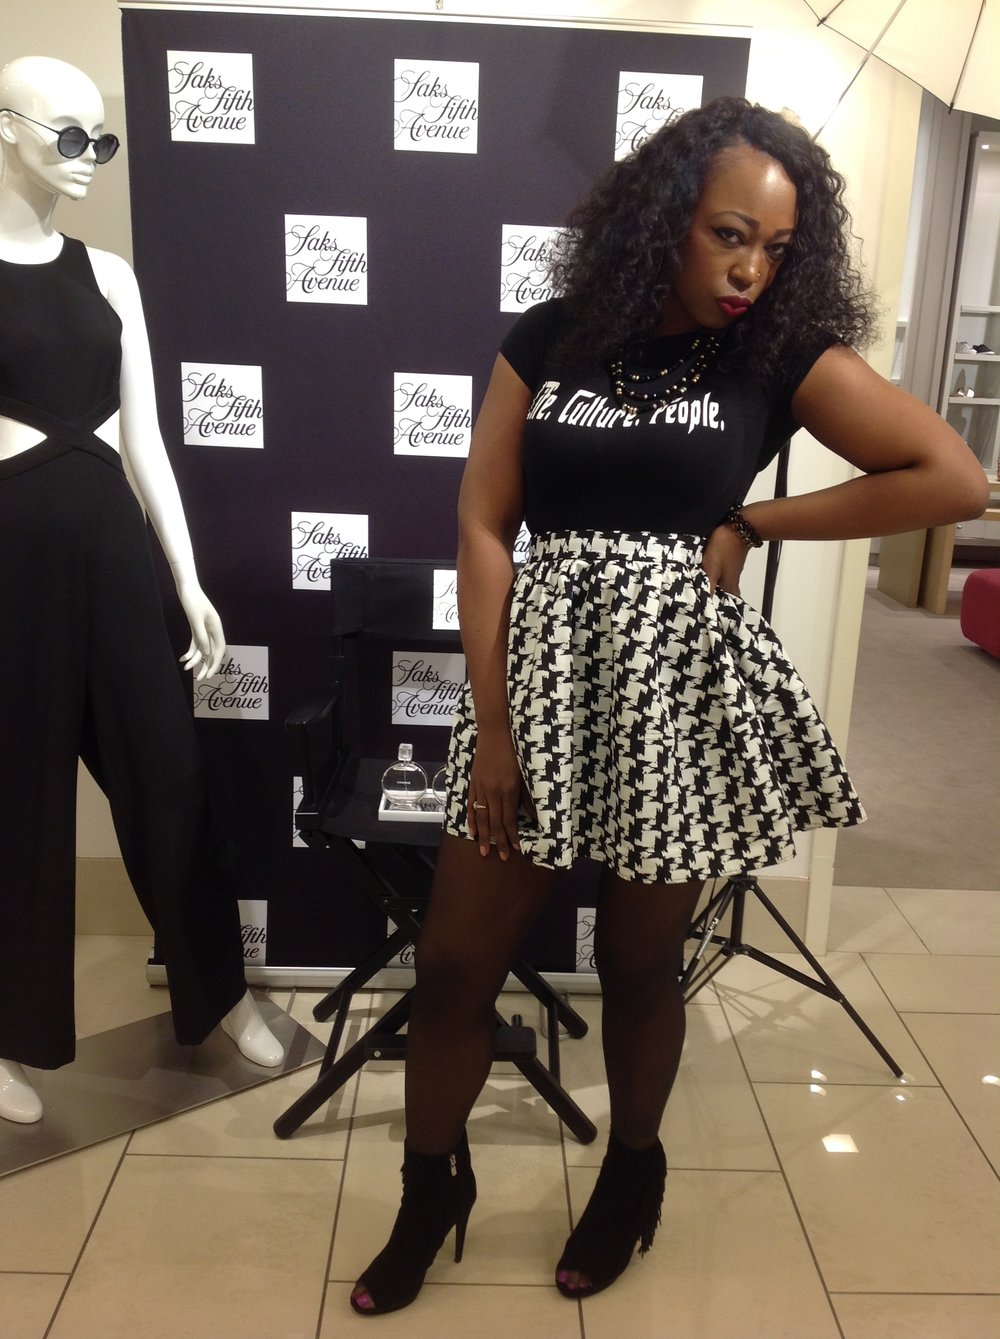 HOSTING BEAUTY WEEK AT SAKS 5TH AVE BIRMINGHAM